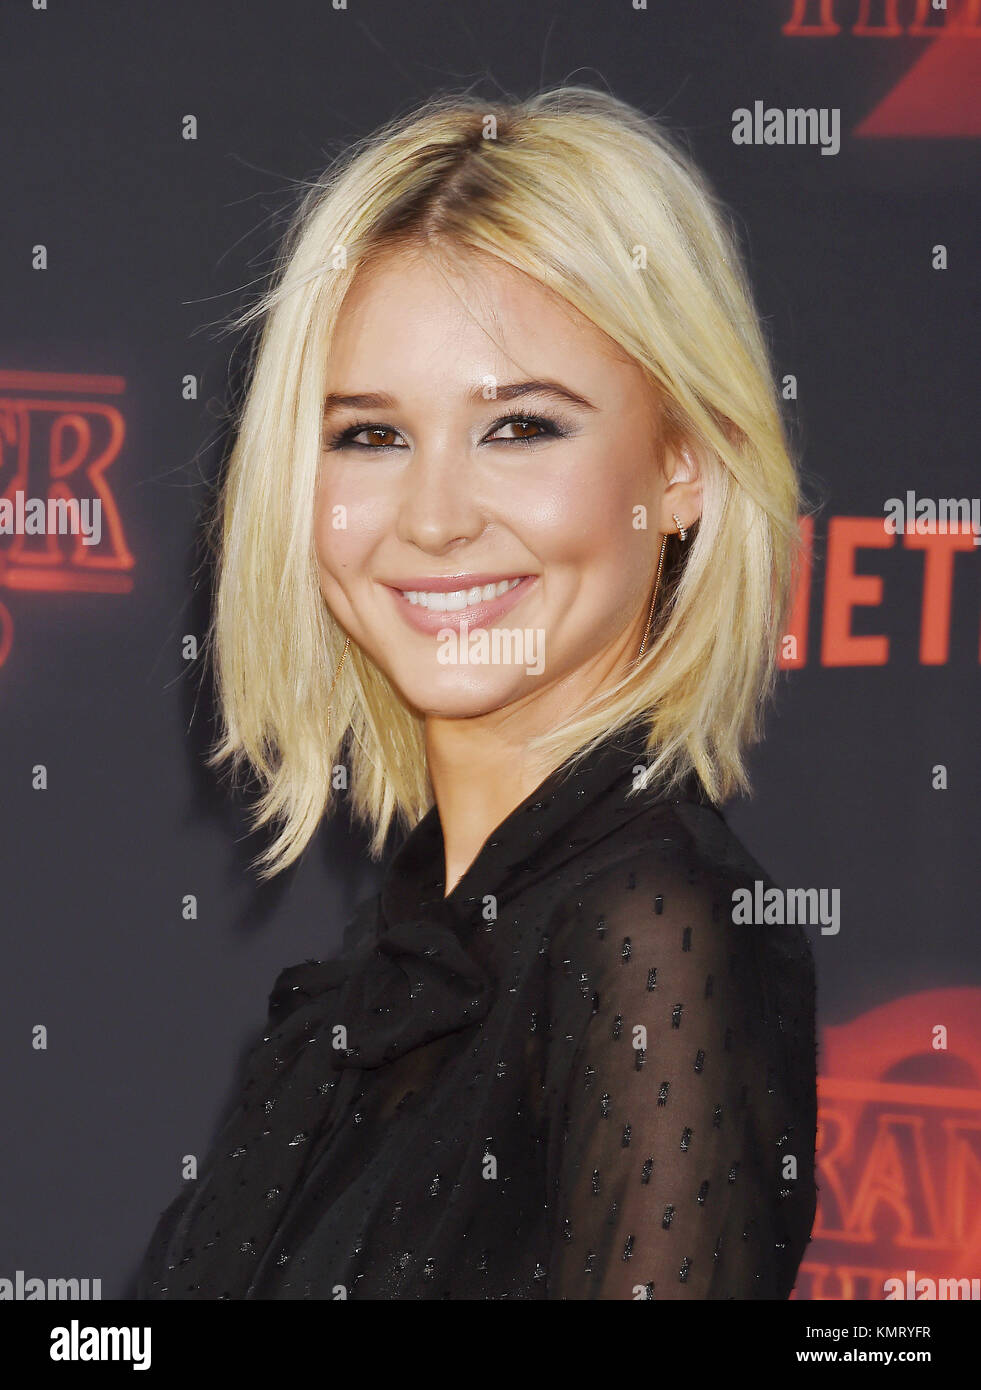 ISABEL MAY US film actress arrives at the Premiere Of Netflix's 'Stranger Things' Season 2 at Regency - Stock Image